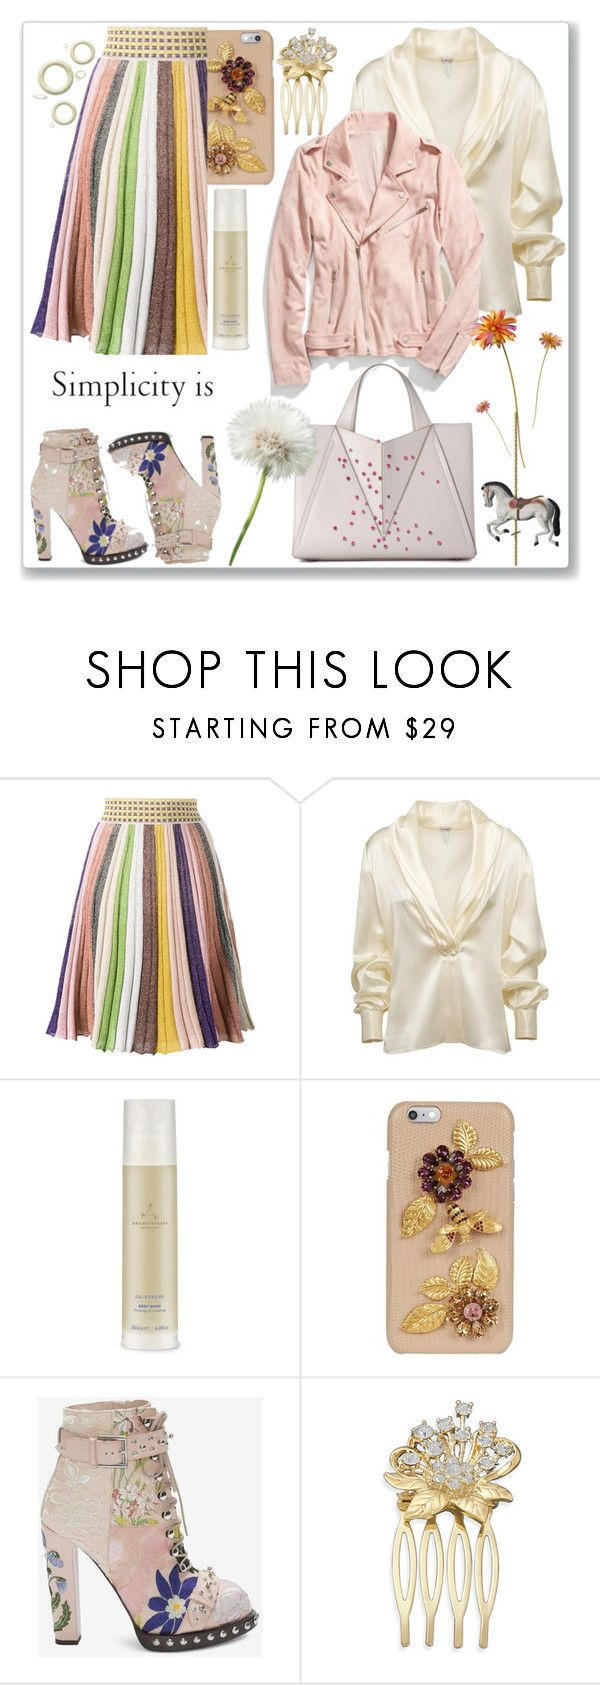 """""""#Stripes Contest"""" by detroitgurlxx ❤ liked on Polyvore featuring Missoni, Loewe, Aromatherapy Associates and Dolce&Gabbana"""